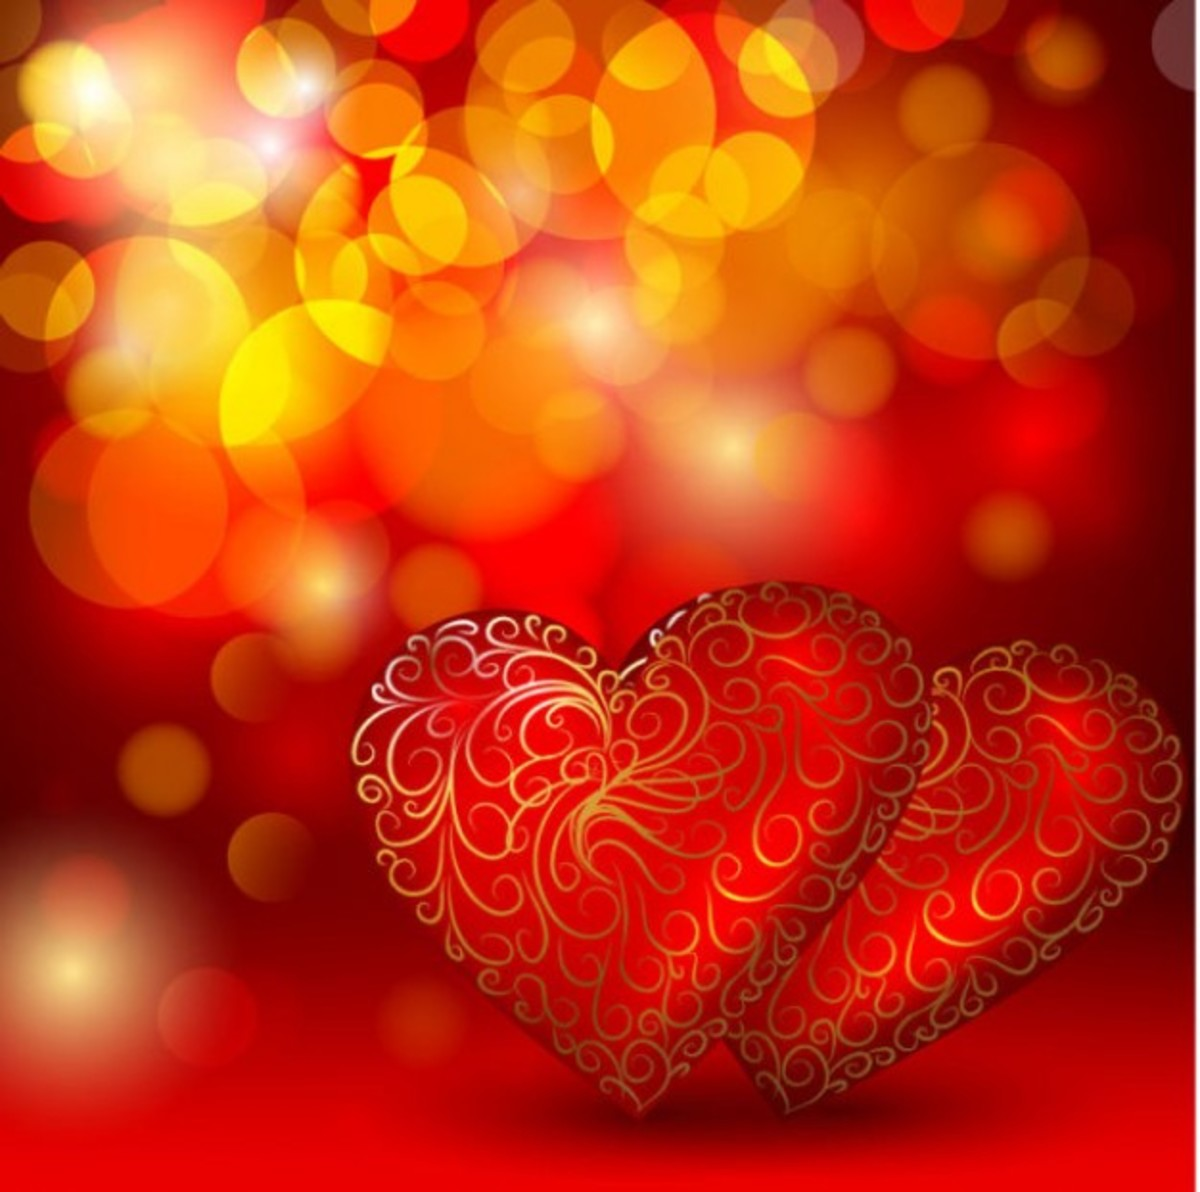 Two Red Hearts Image